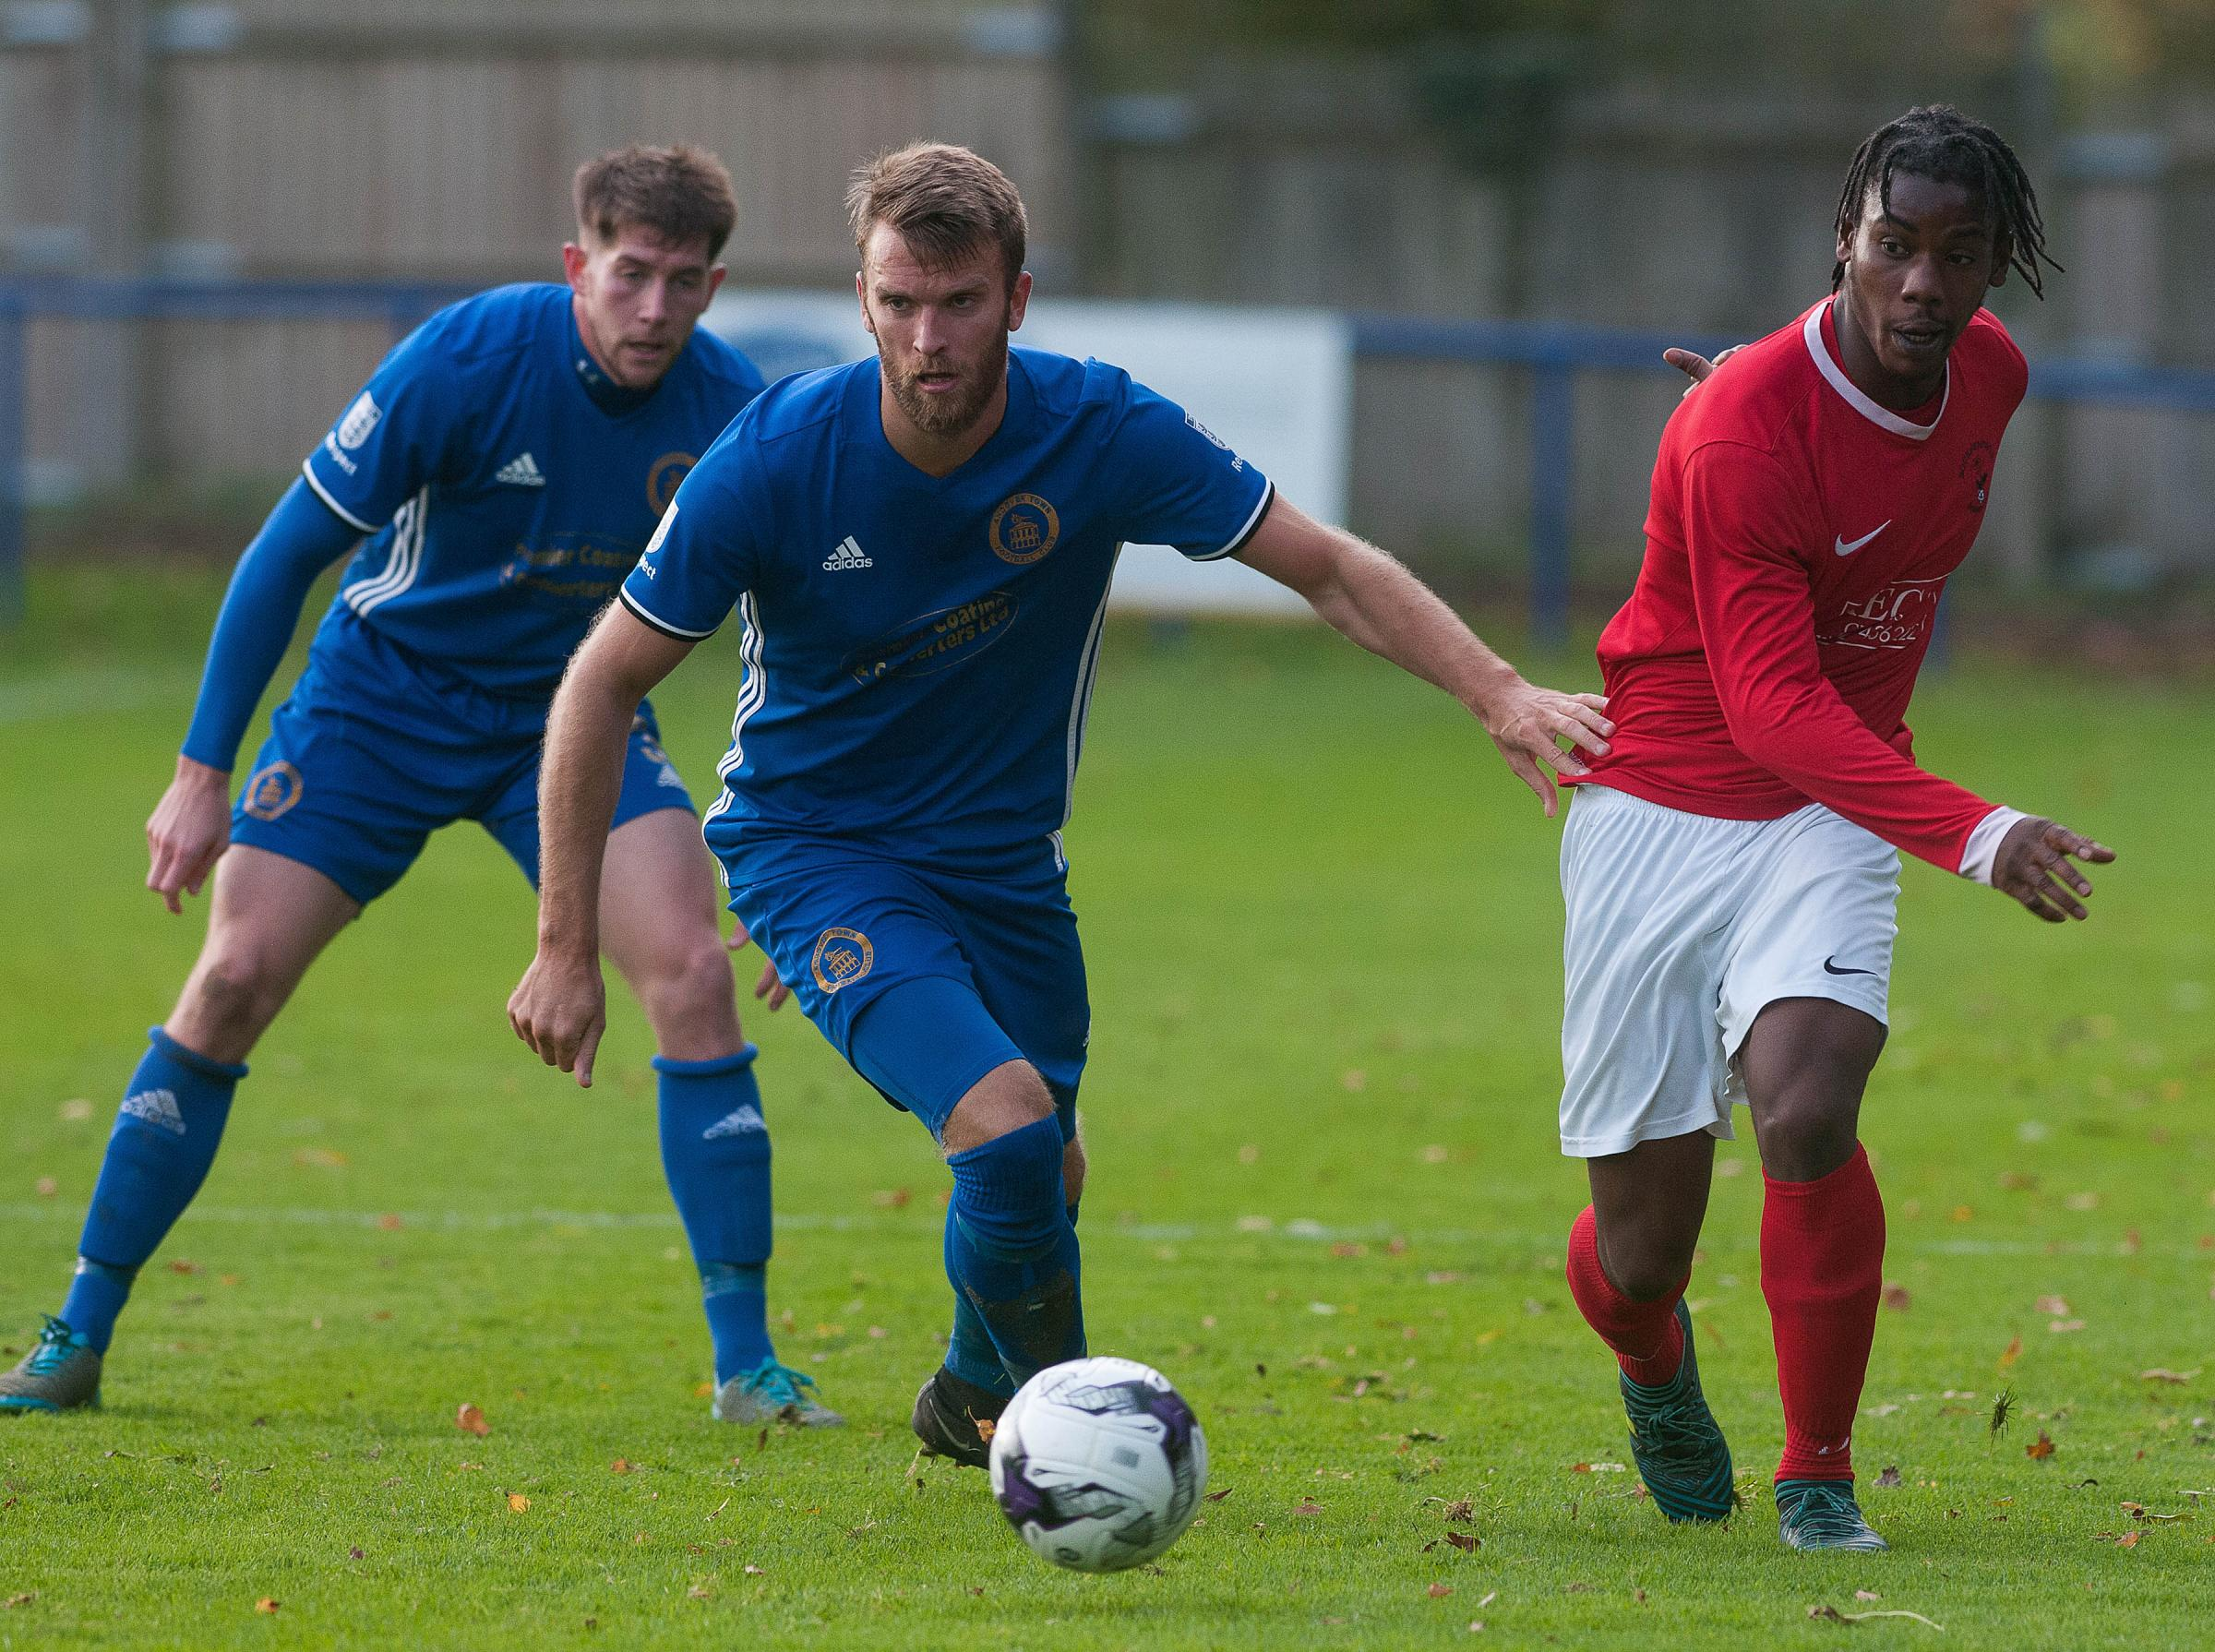 Andover's Mike Gosney (photo: Andy Brooks)